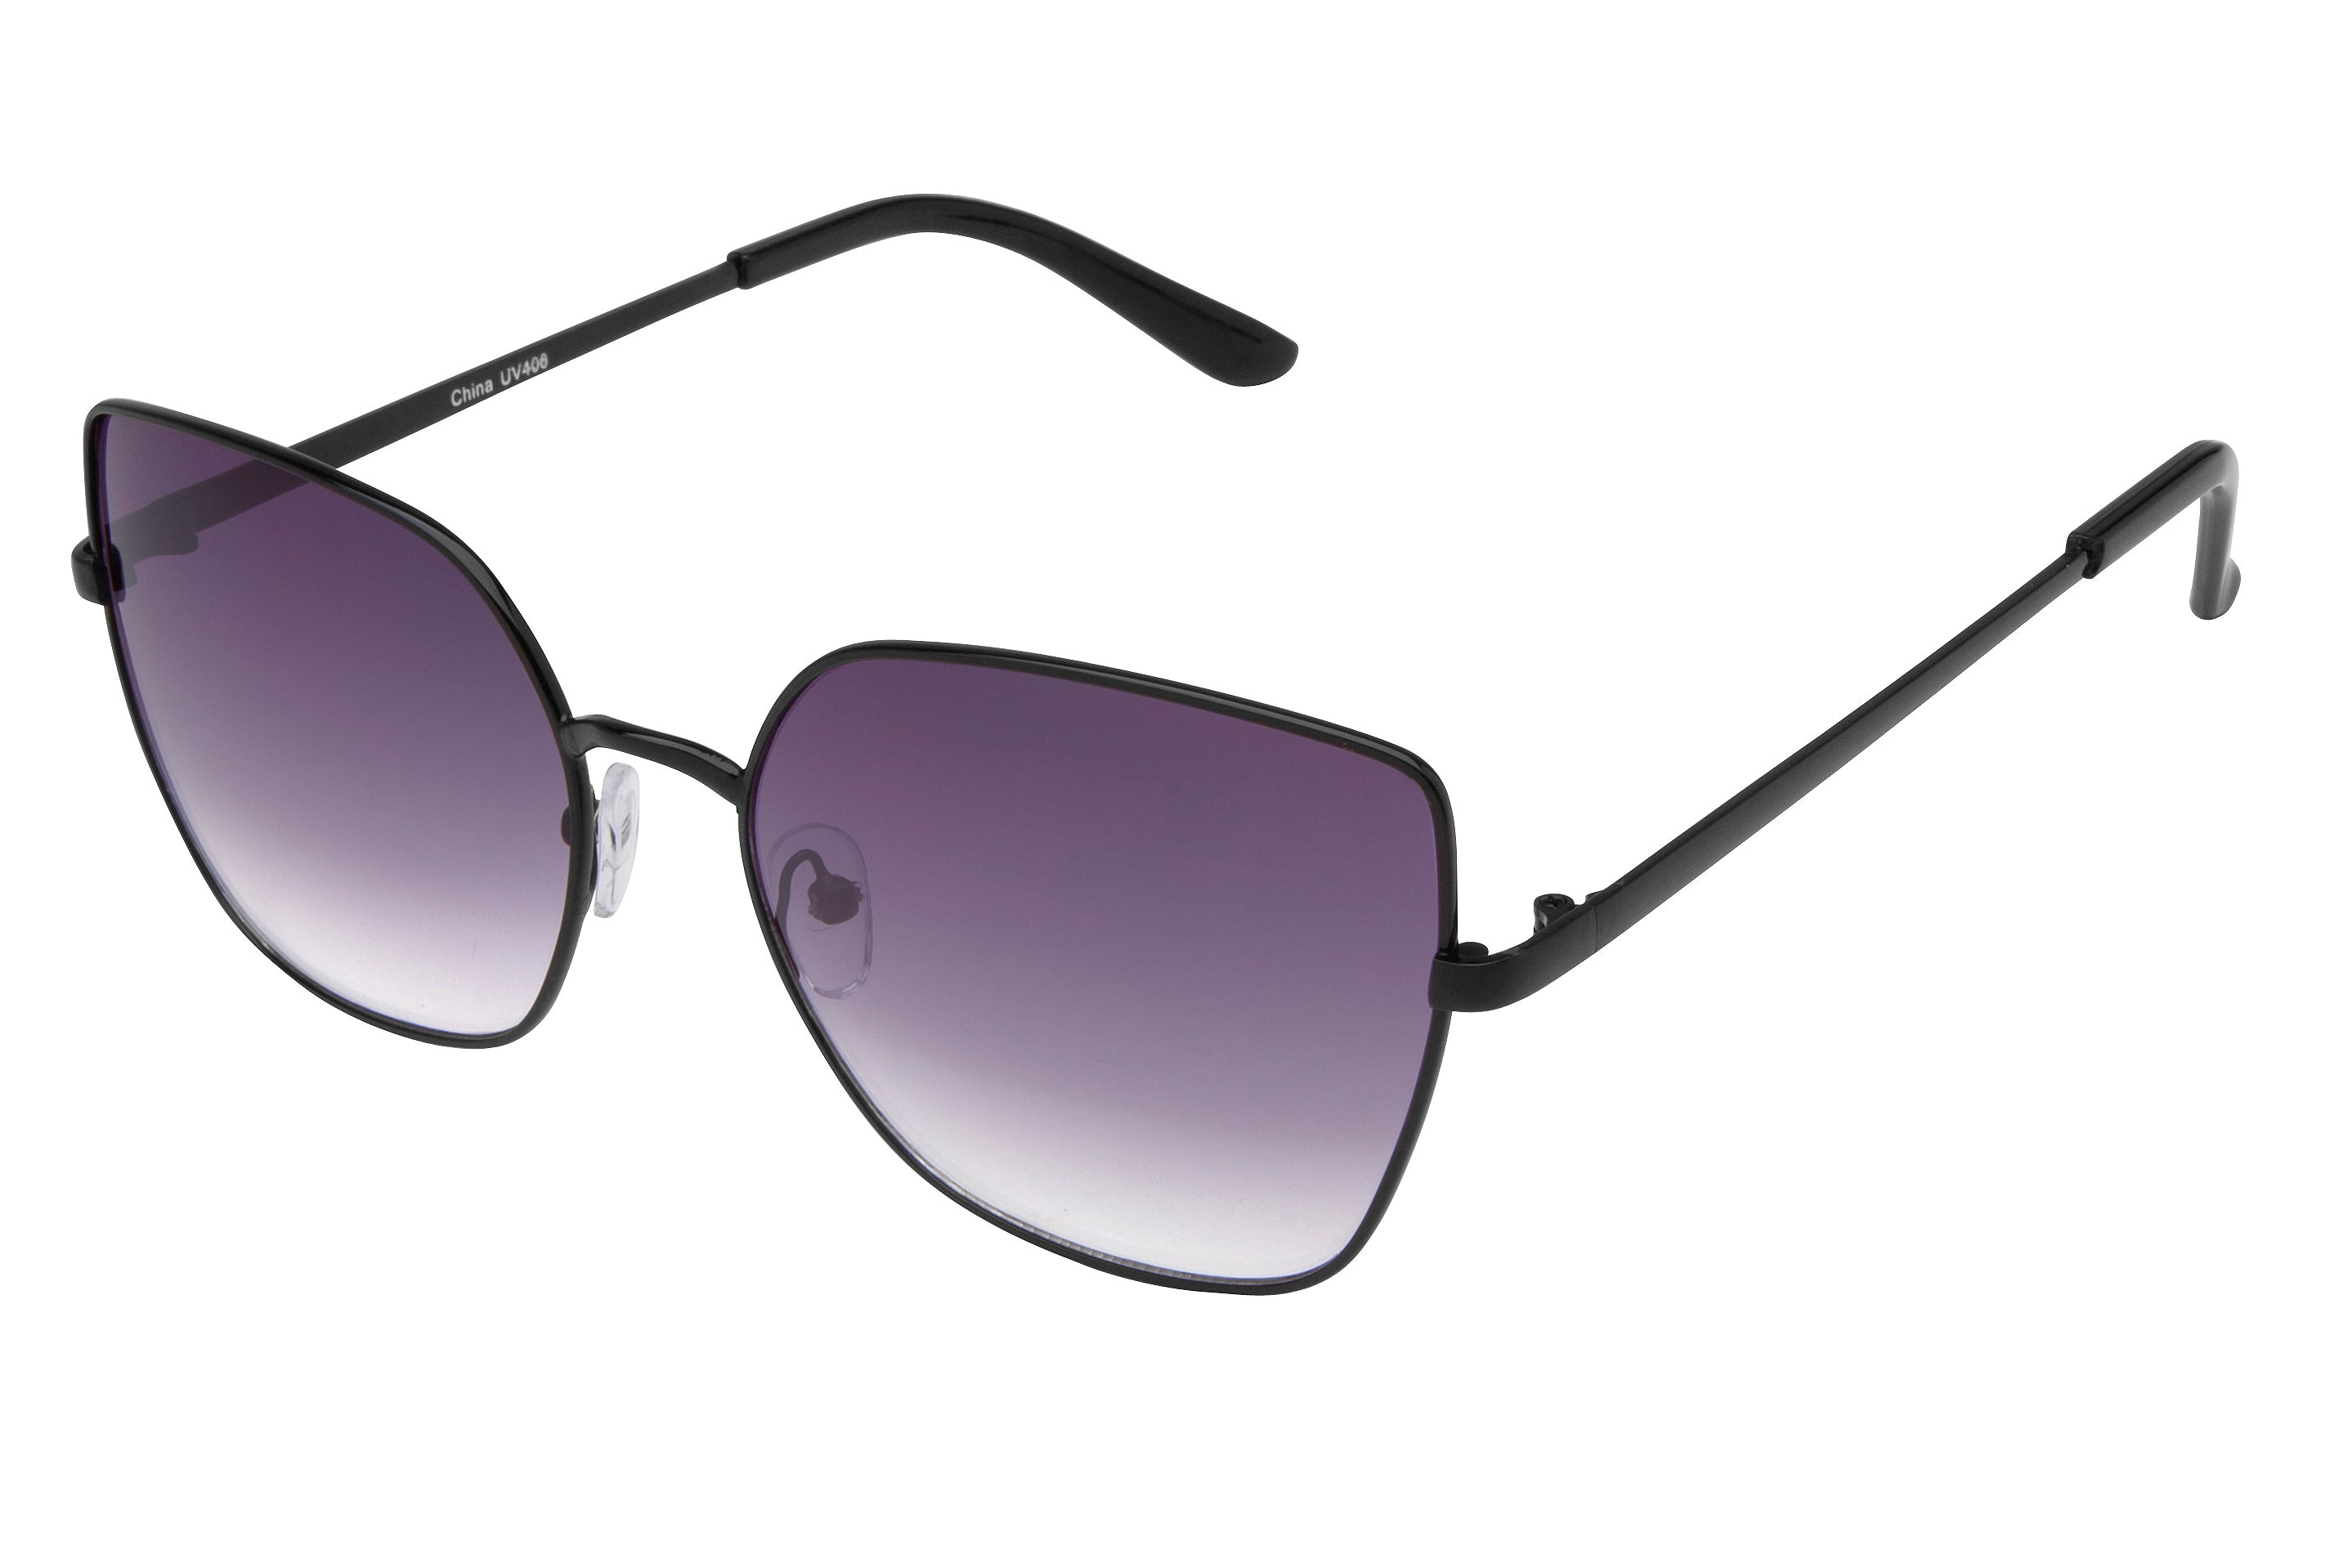 66181 - Vox Women's Metal Fashion Sunglasses